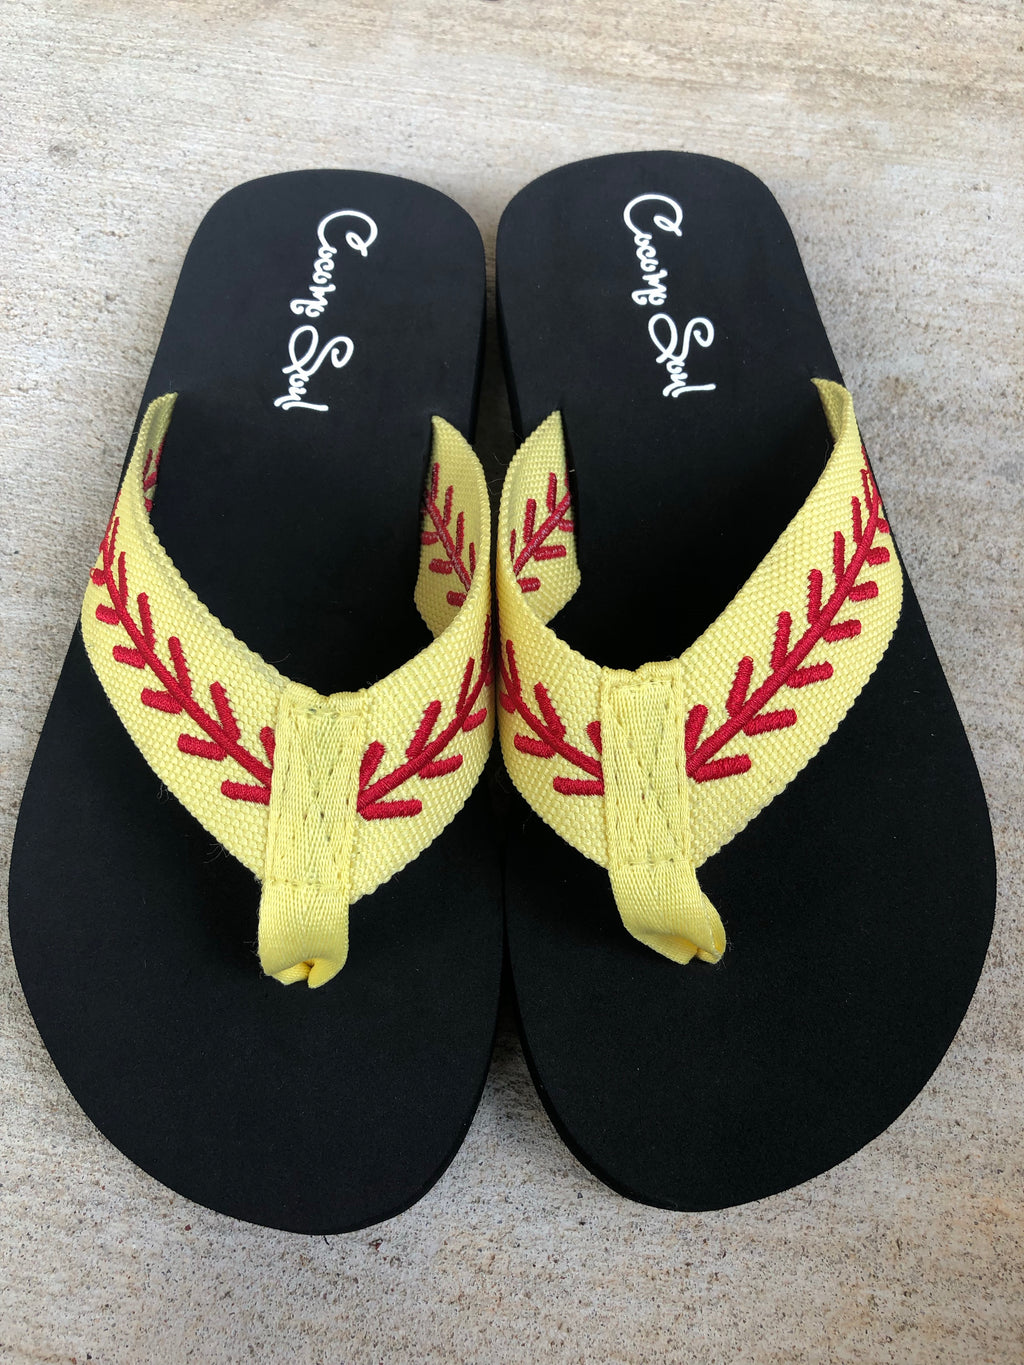 Embroidered Softball Fabric Flip Flops Women's